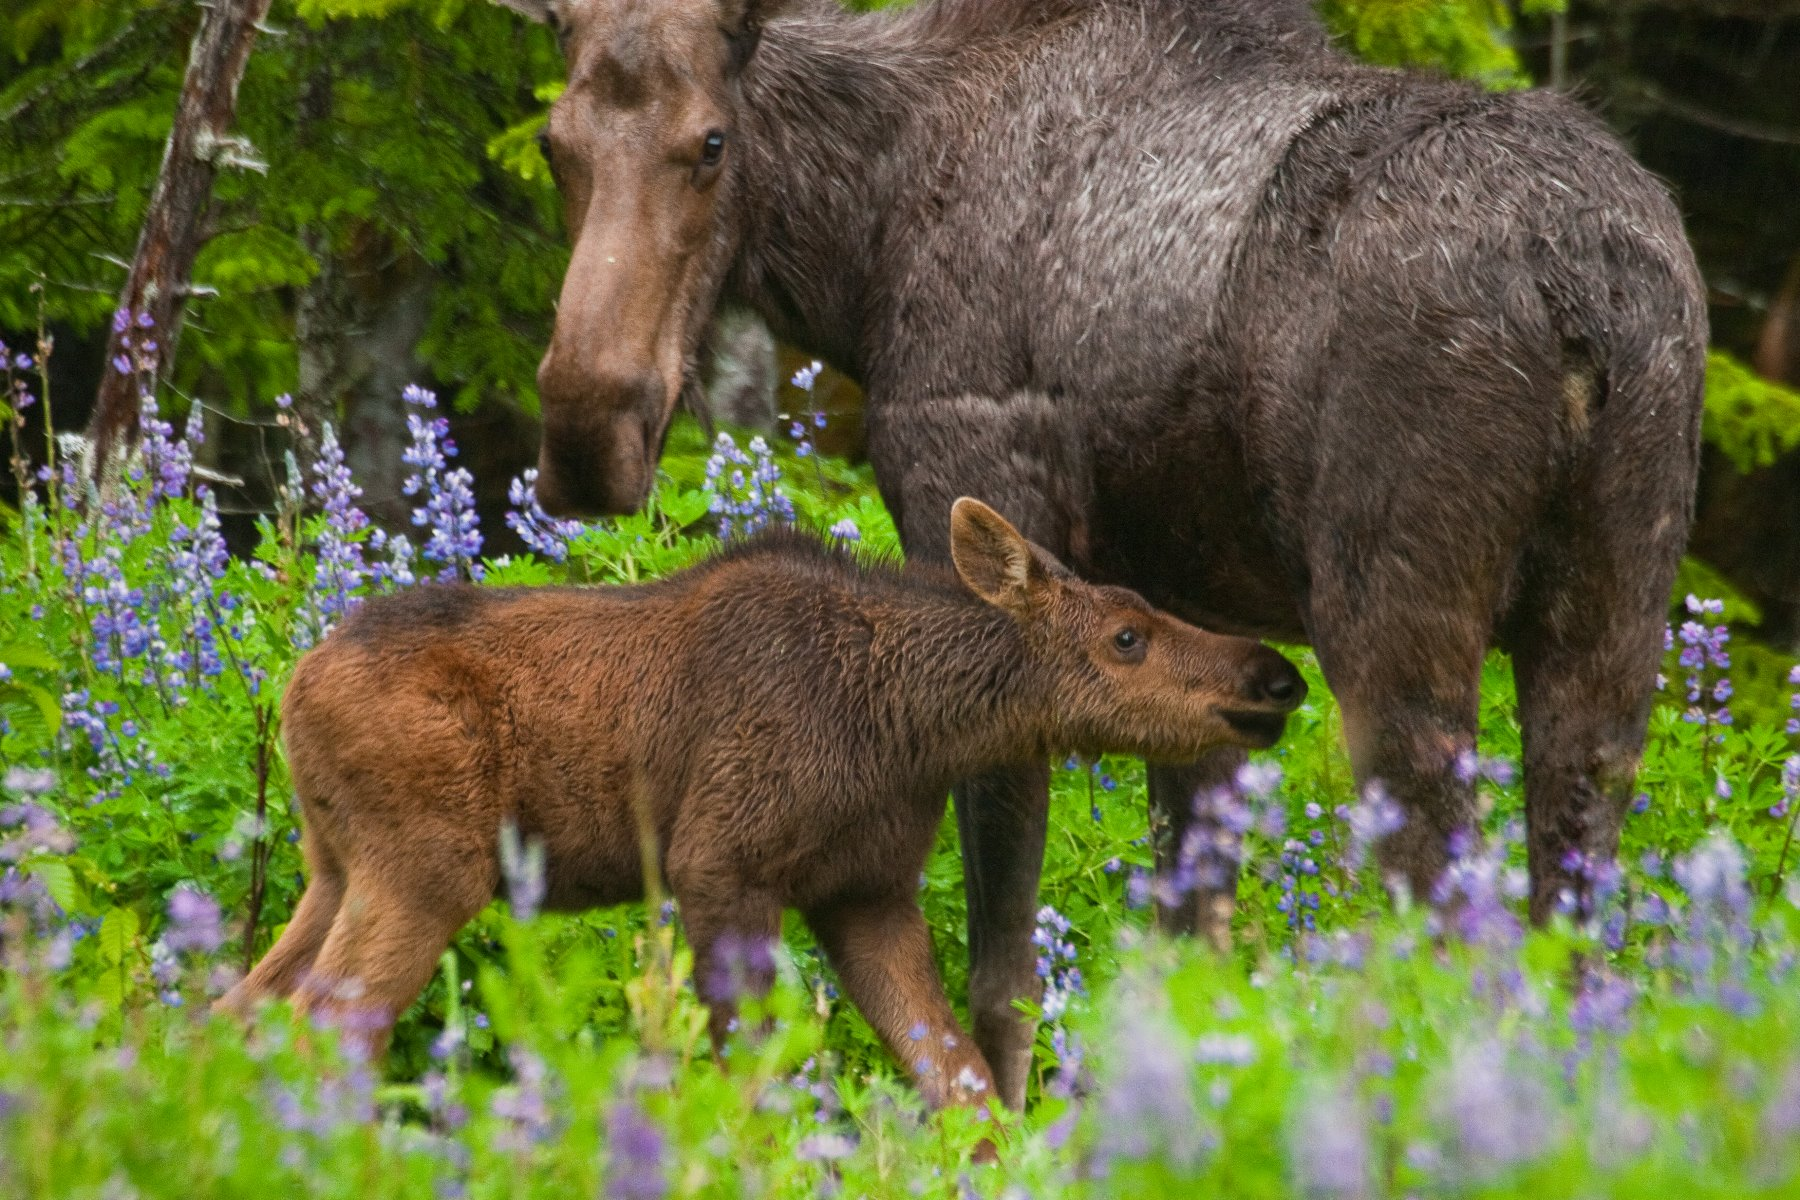 A young moose calf, only about five weeks old, nuzzles up to its mother.